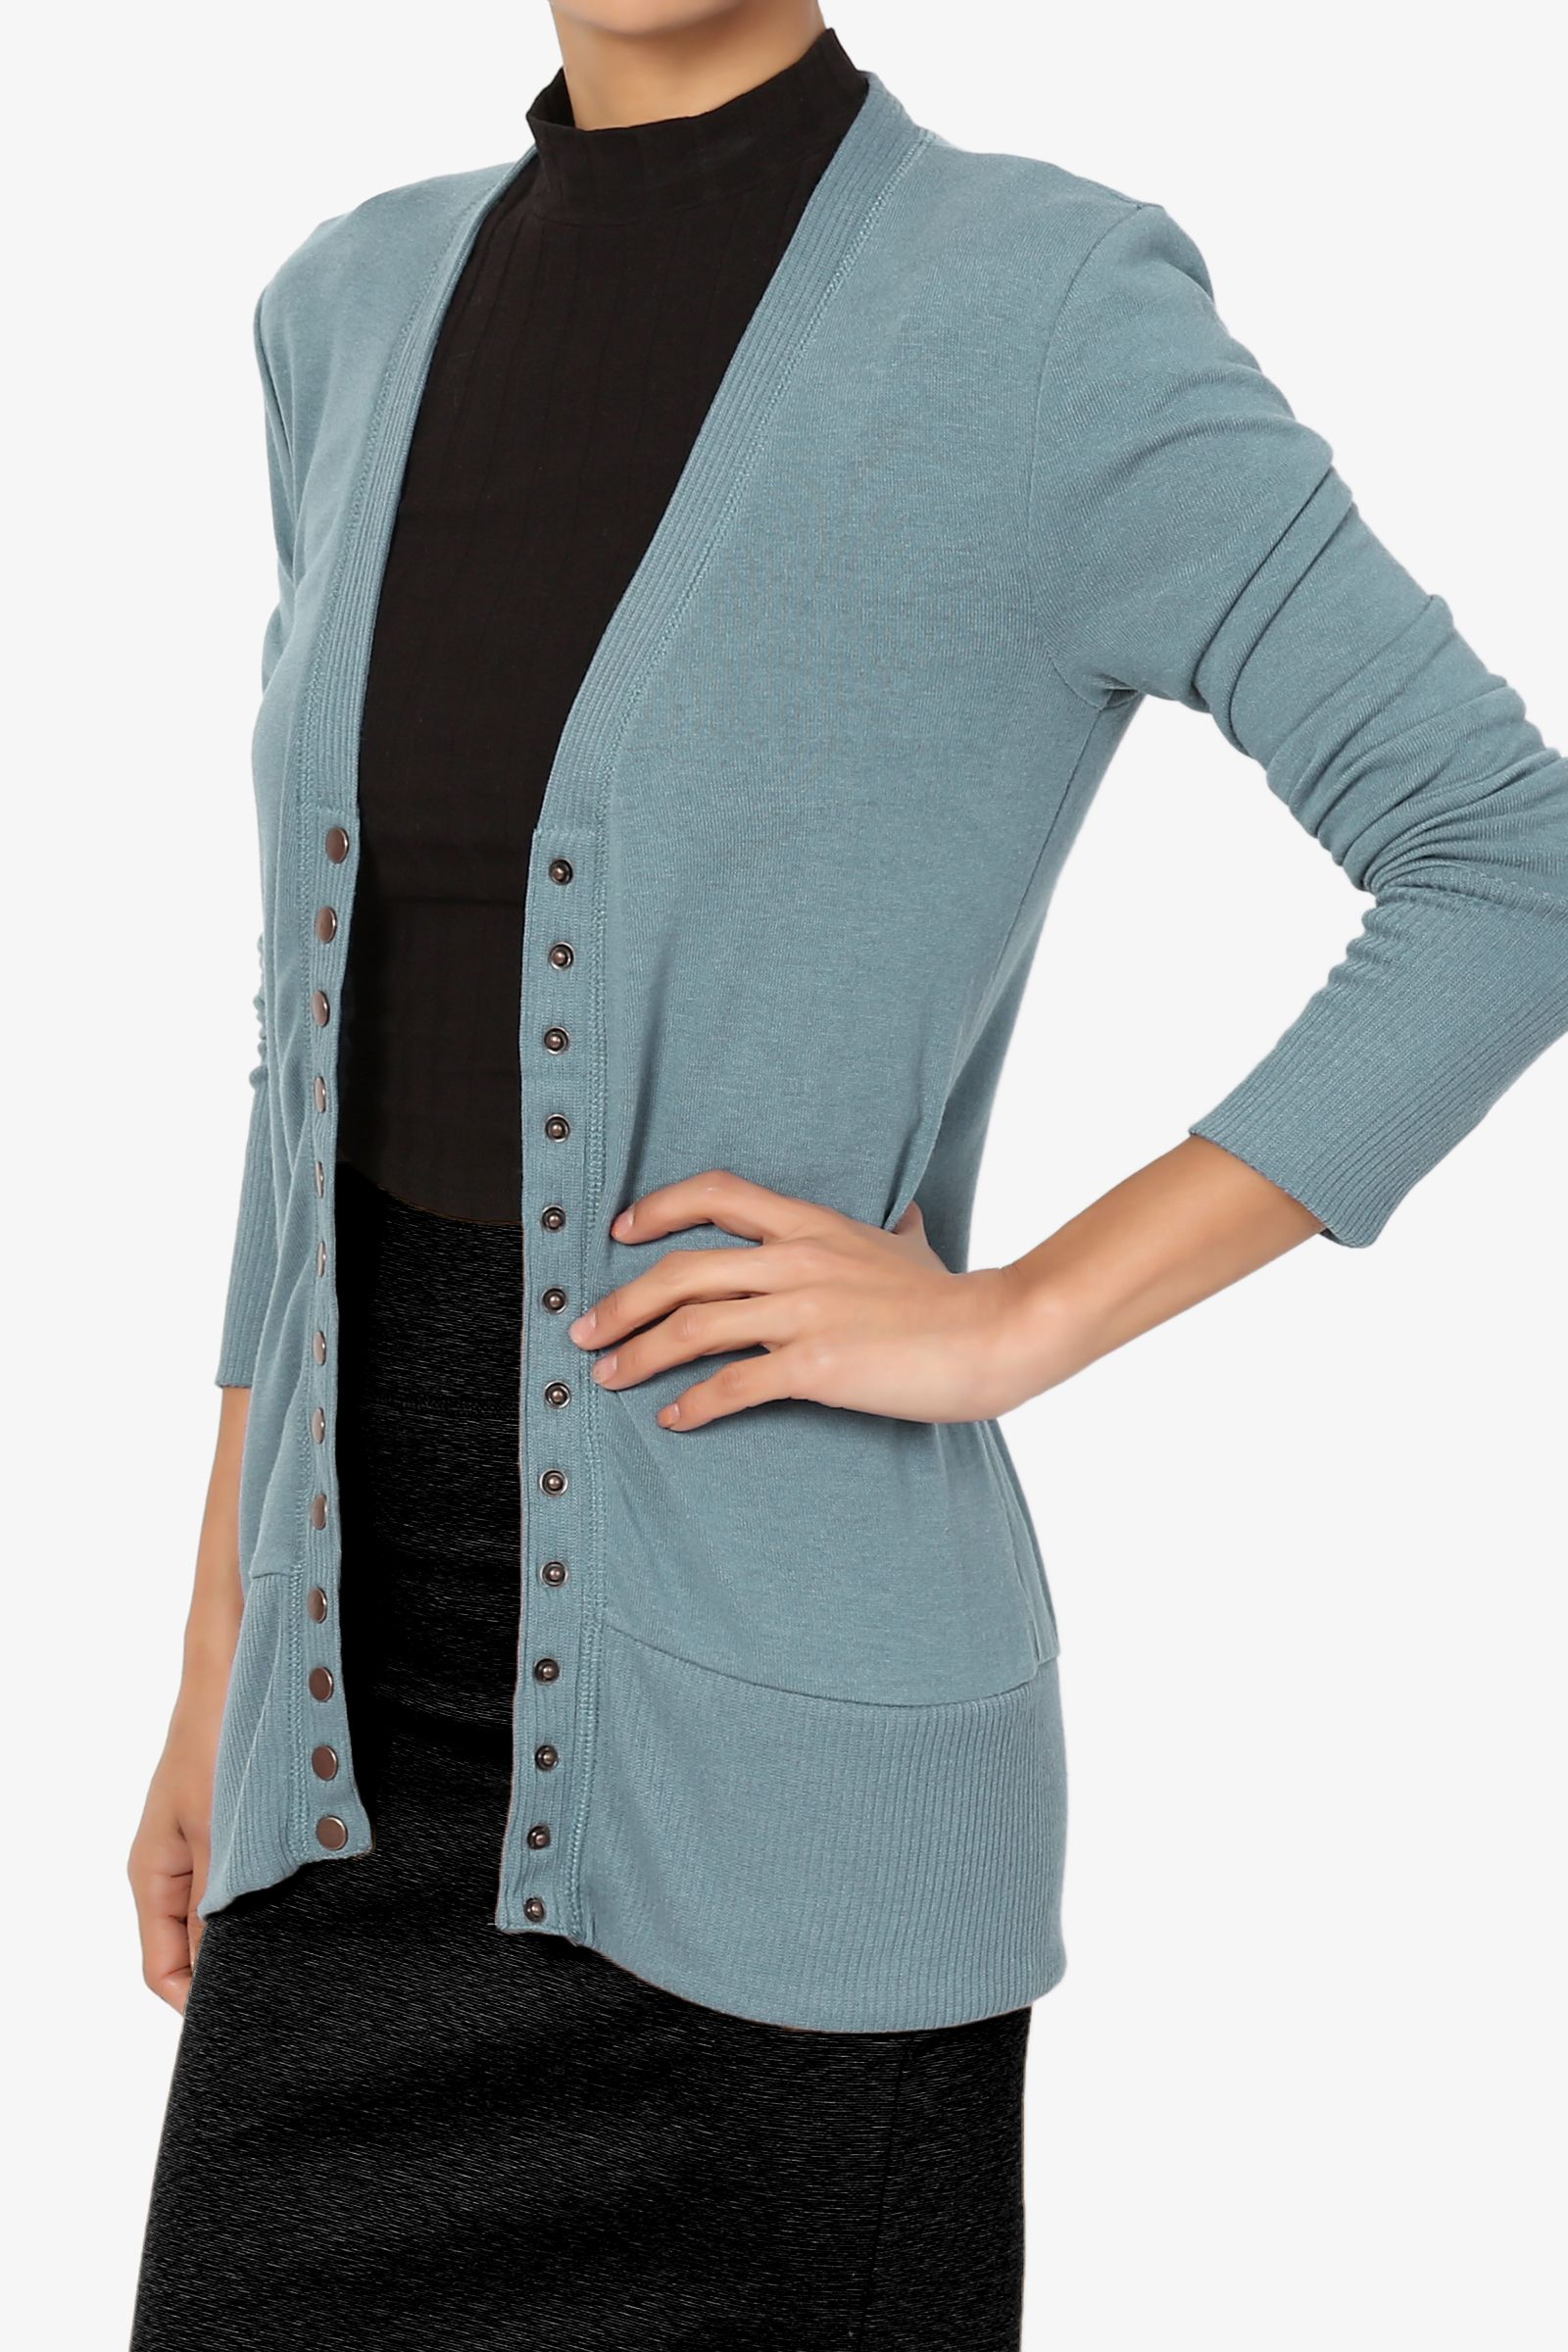 TheMogan Women's PLUS Basic Snap Button V Neck Long Sleeve